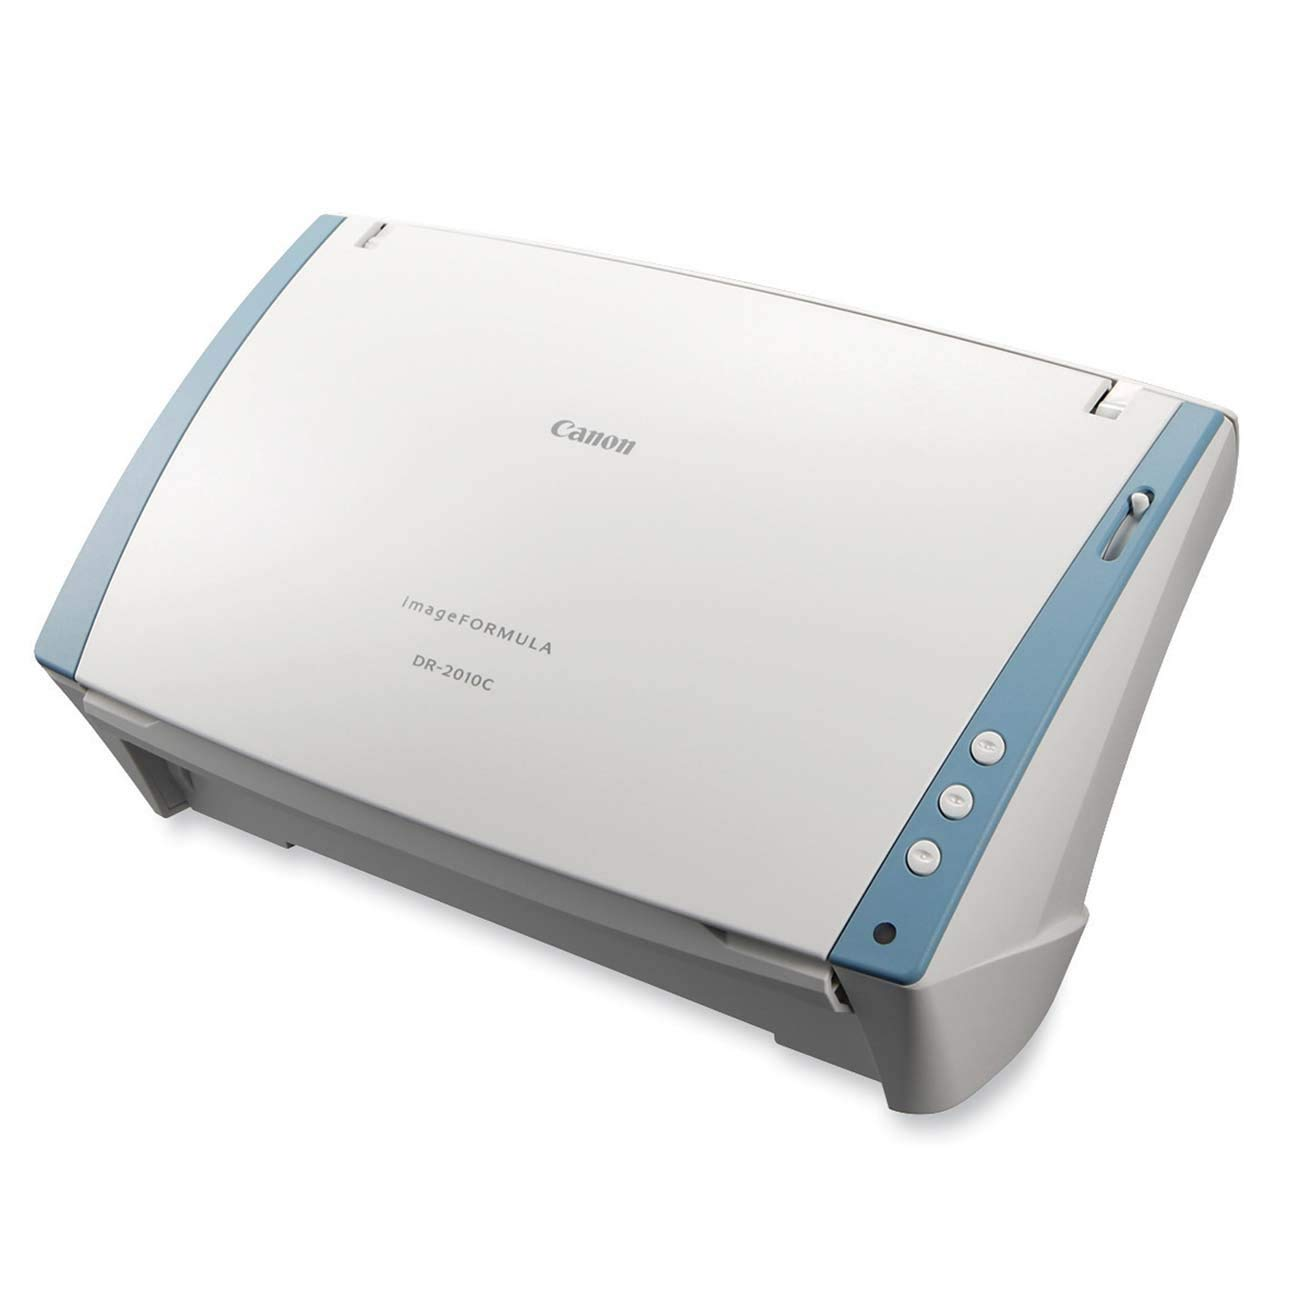 Canon imageFORMULA DR-2010C Office Document Scanner (Renewed) by Canon